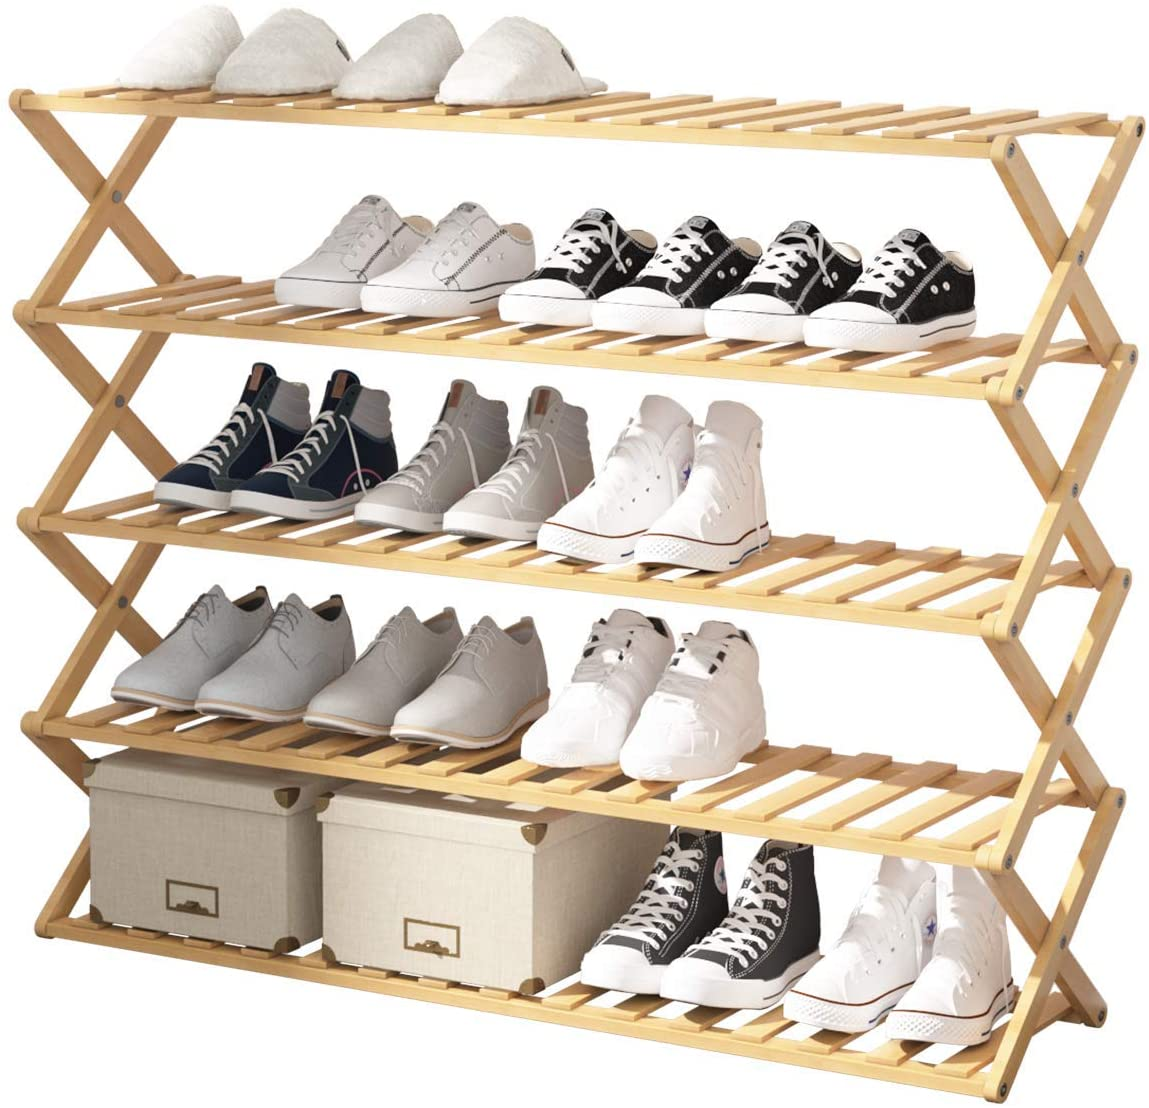 UDEAR Bamboo Shoe Rack,Foldable Free Standing Shoe Shelf Storage Organizer Multifunction,Free Installation,Living Room,Bathroom,Balcony,39.37×11.02×31.5inches,5-Tier,Wood Color